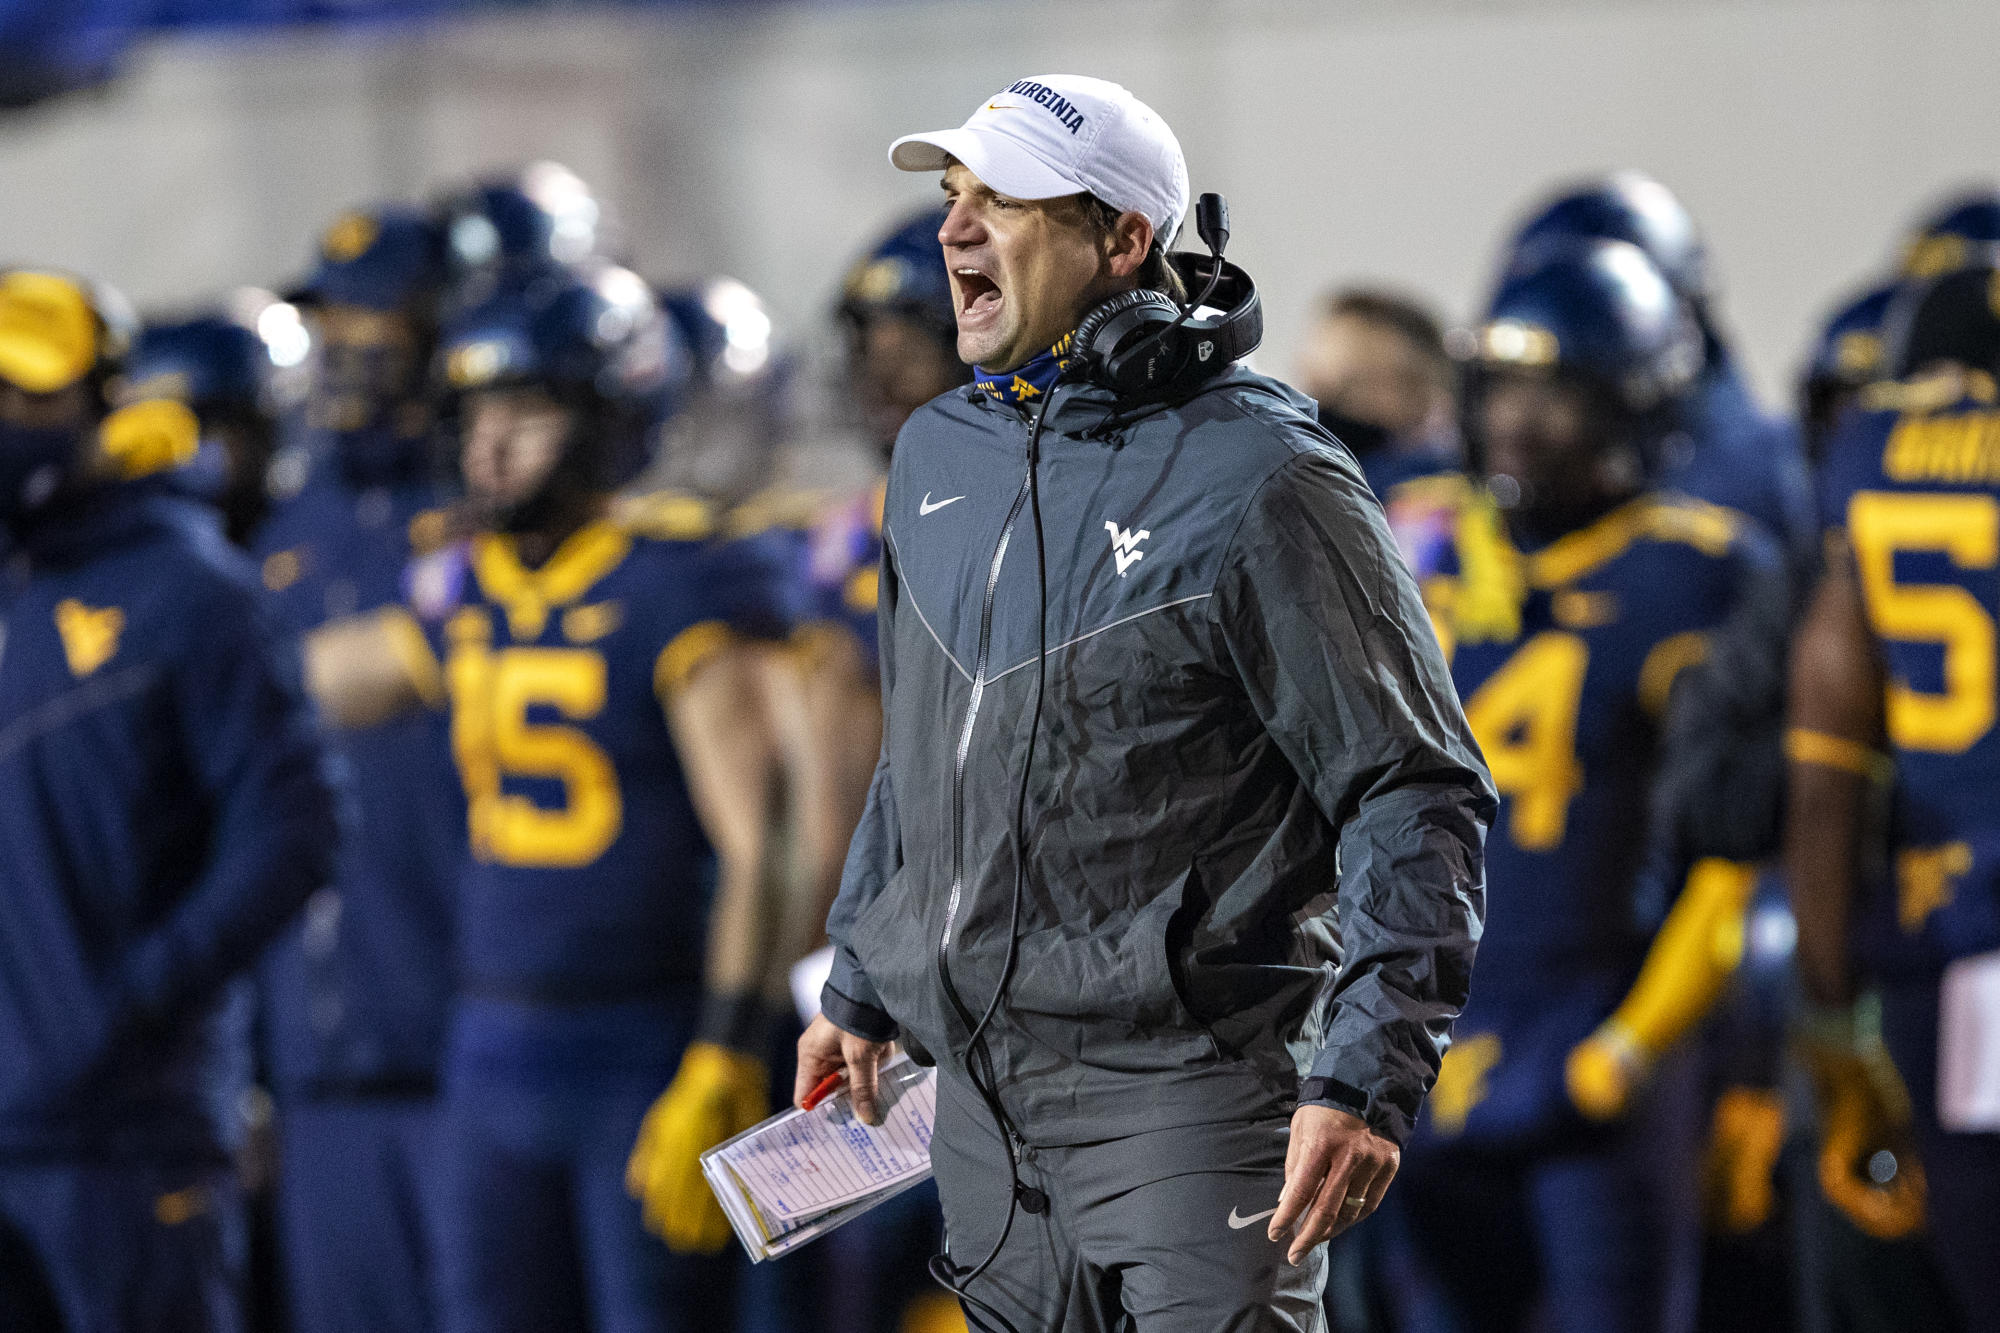 Best futures bets on the Mountaineers